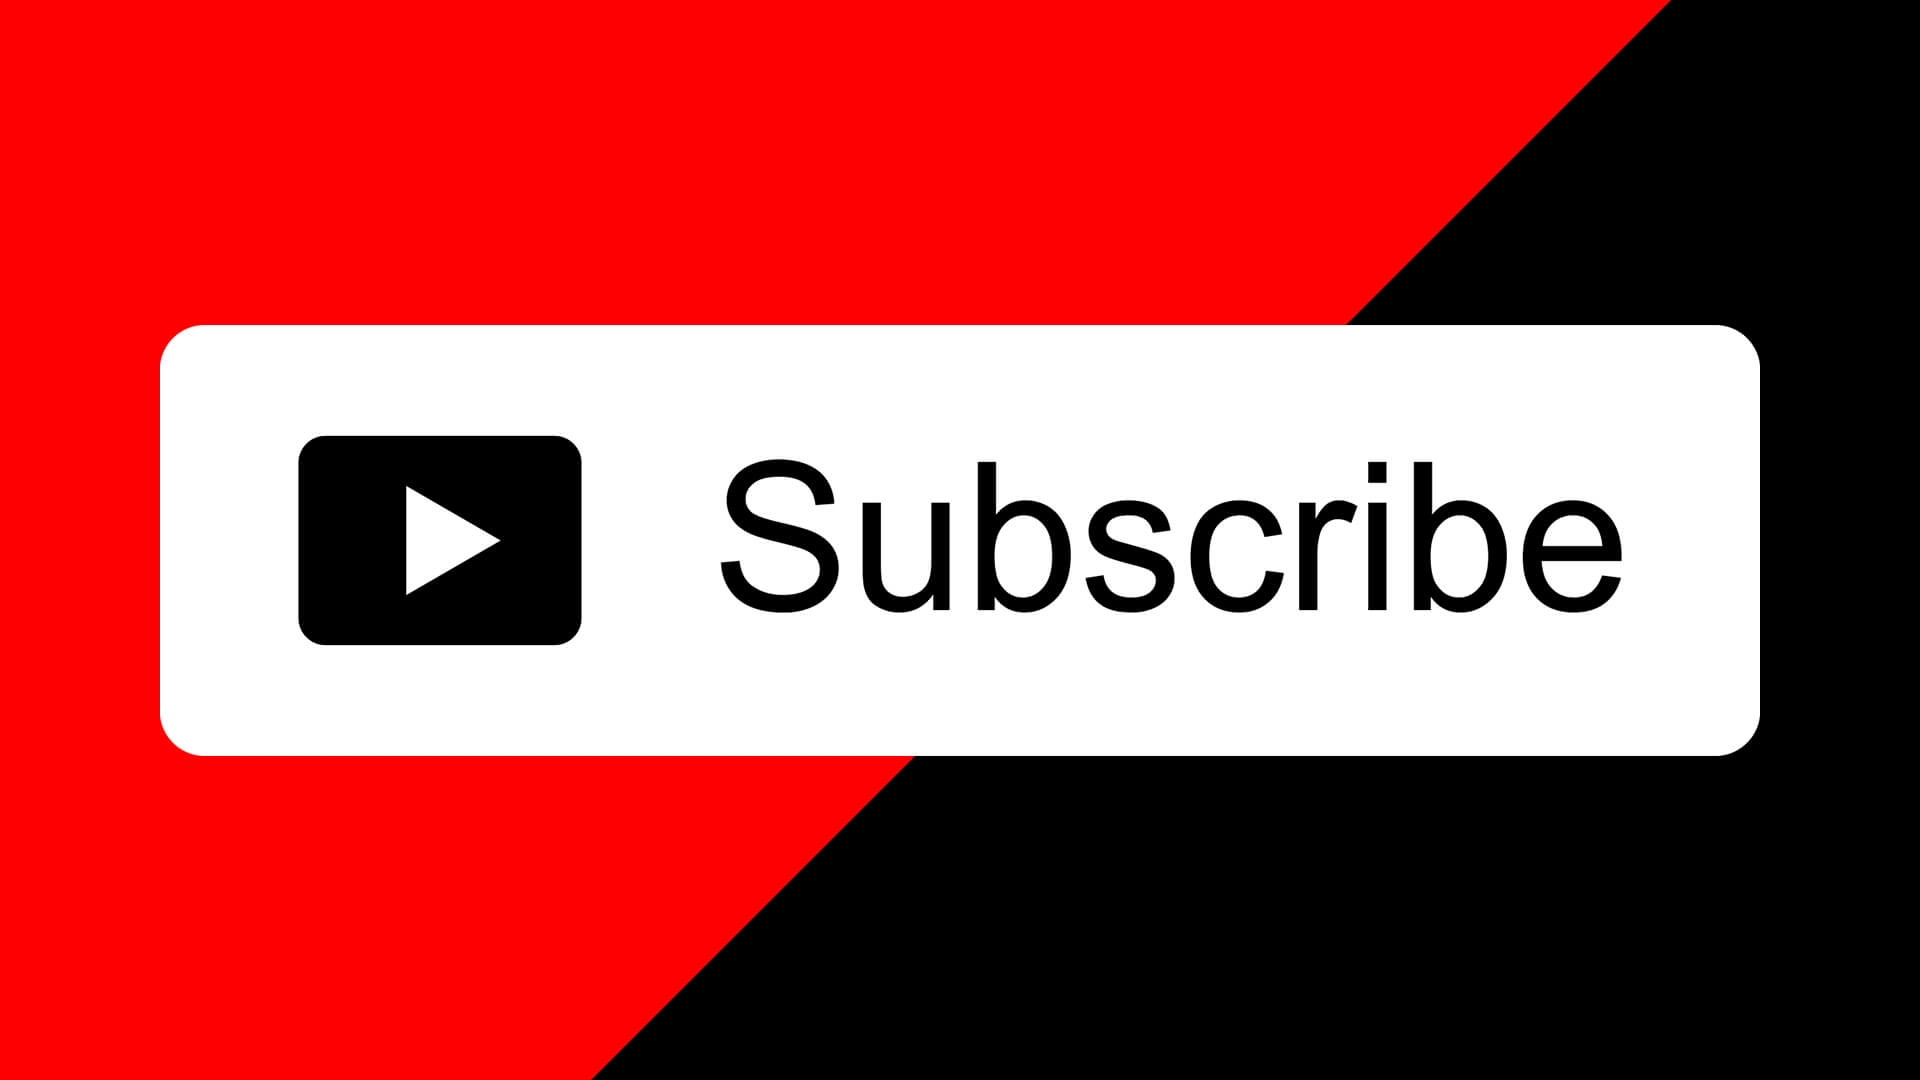 YouTube Subscribe Button Free Download #1 By AlfredoCreates.com.